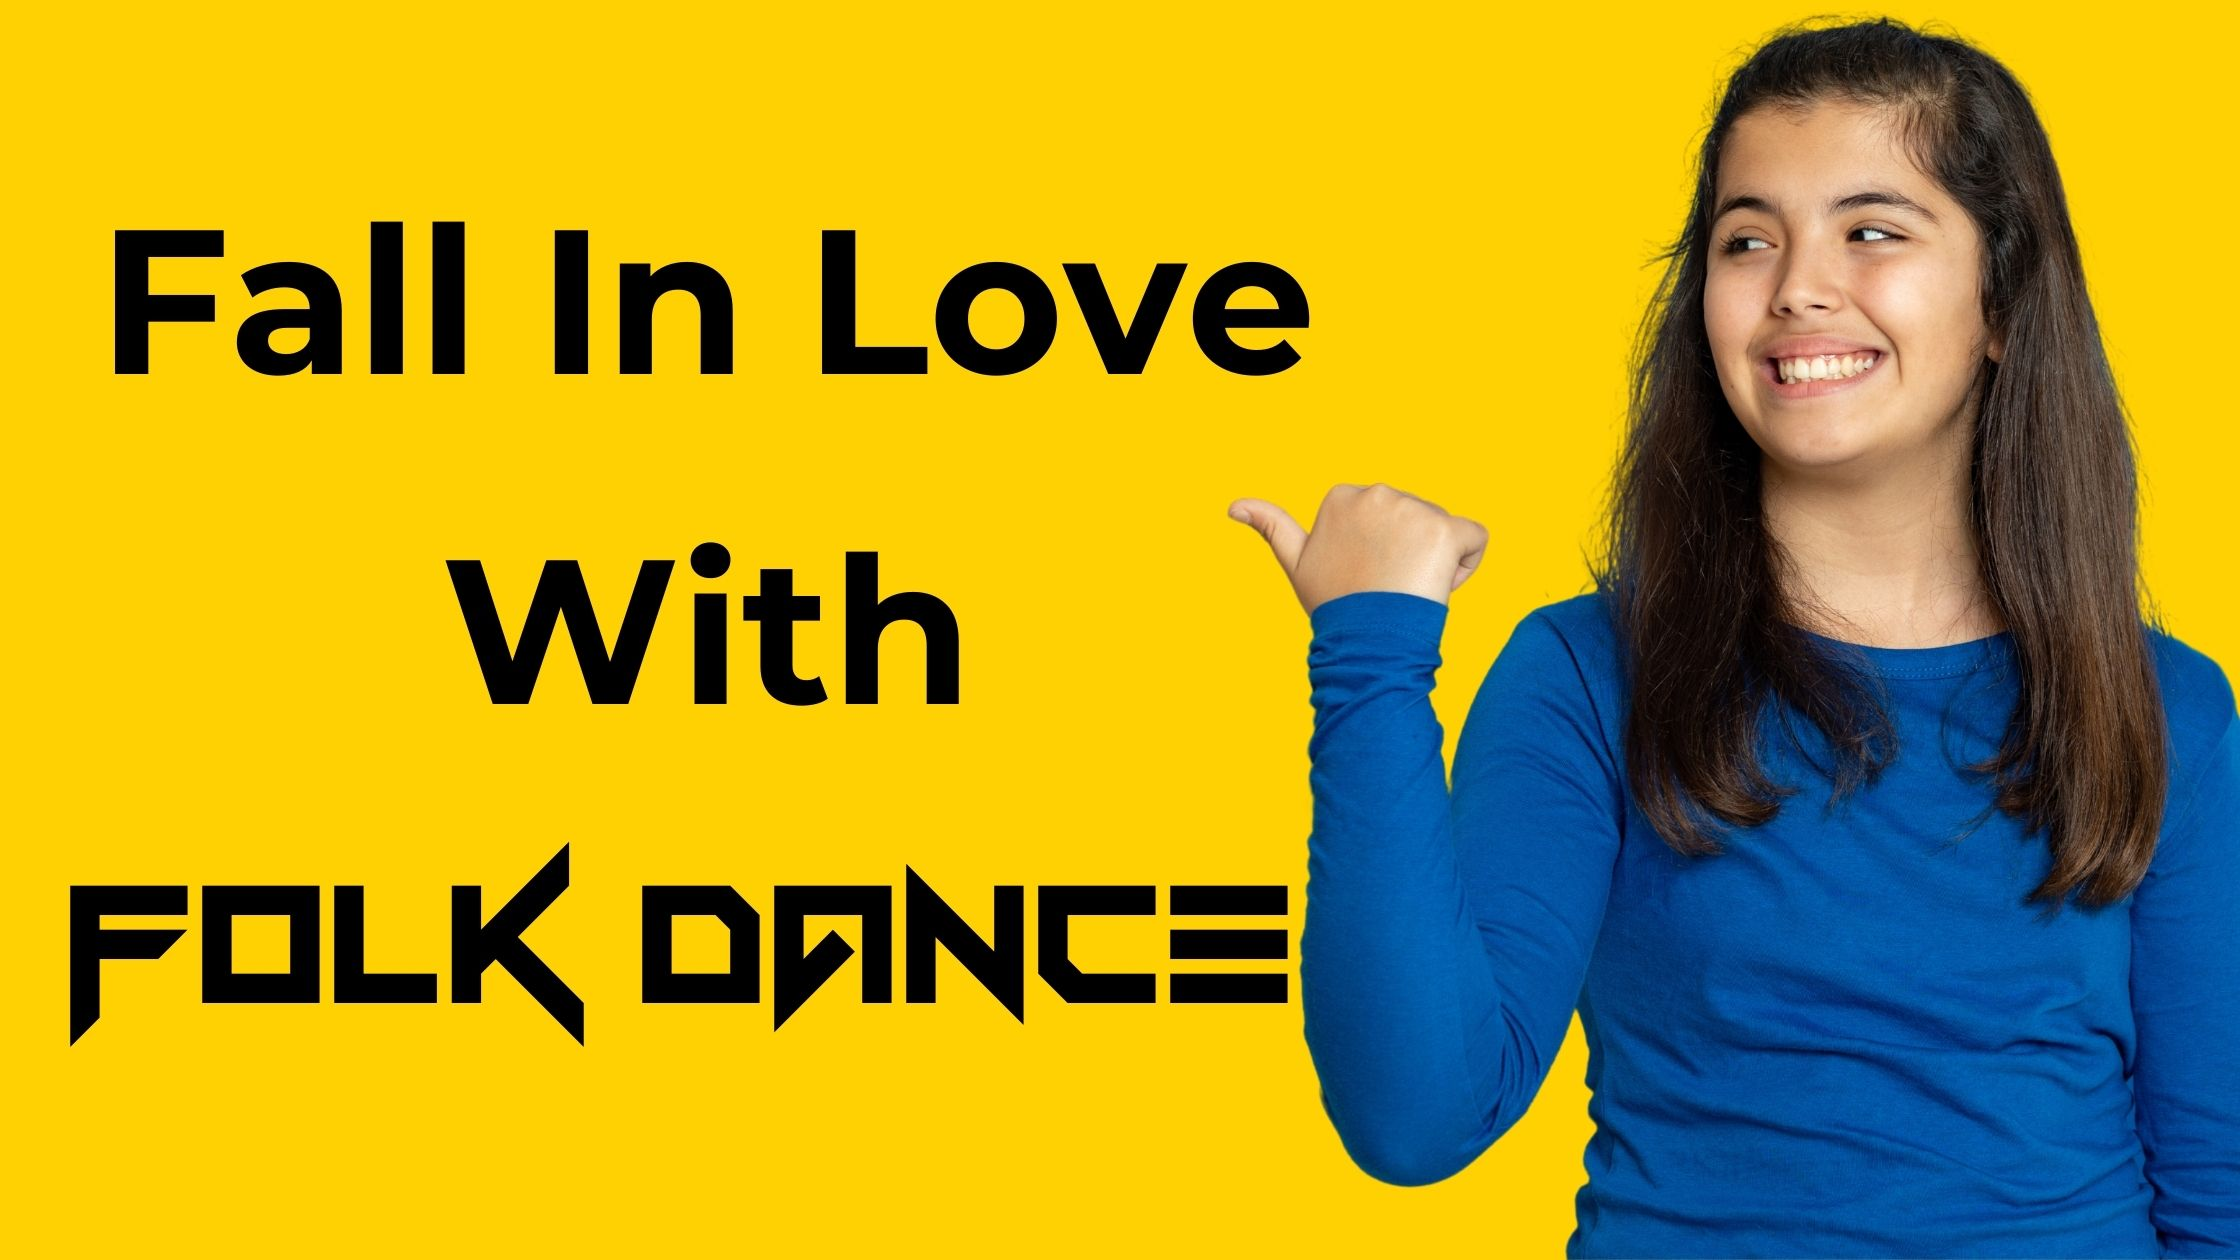 Folk Dance: I'm Damn Sure You Will Fall In Love With-After Reading This.